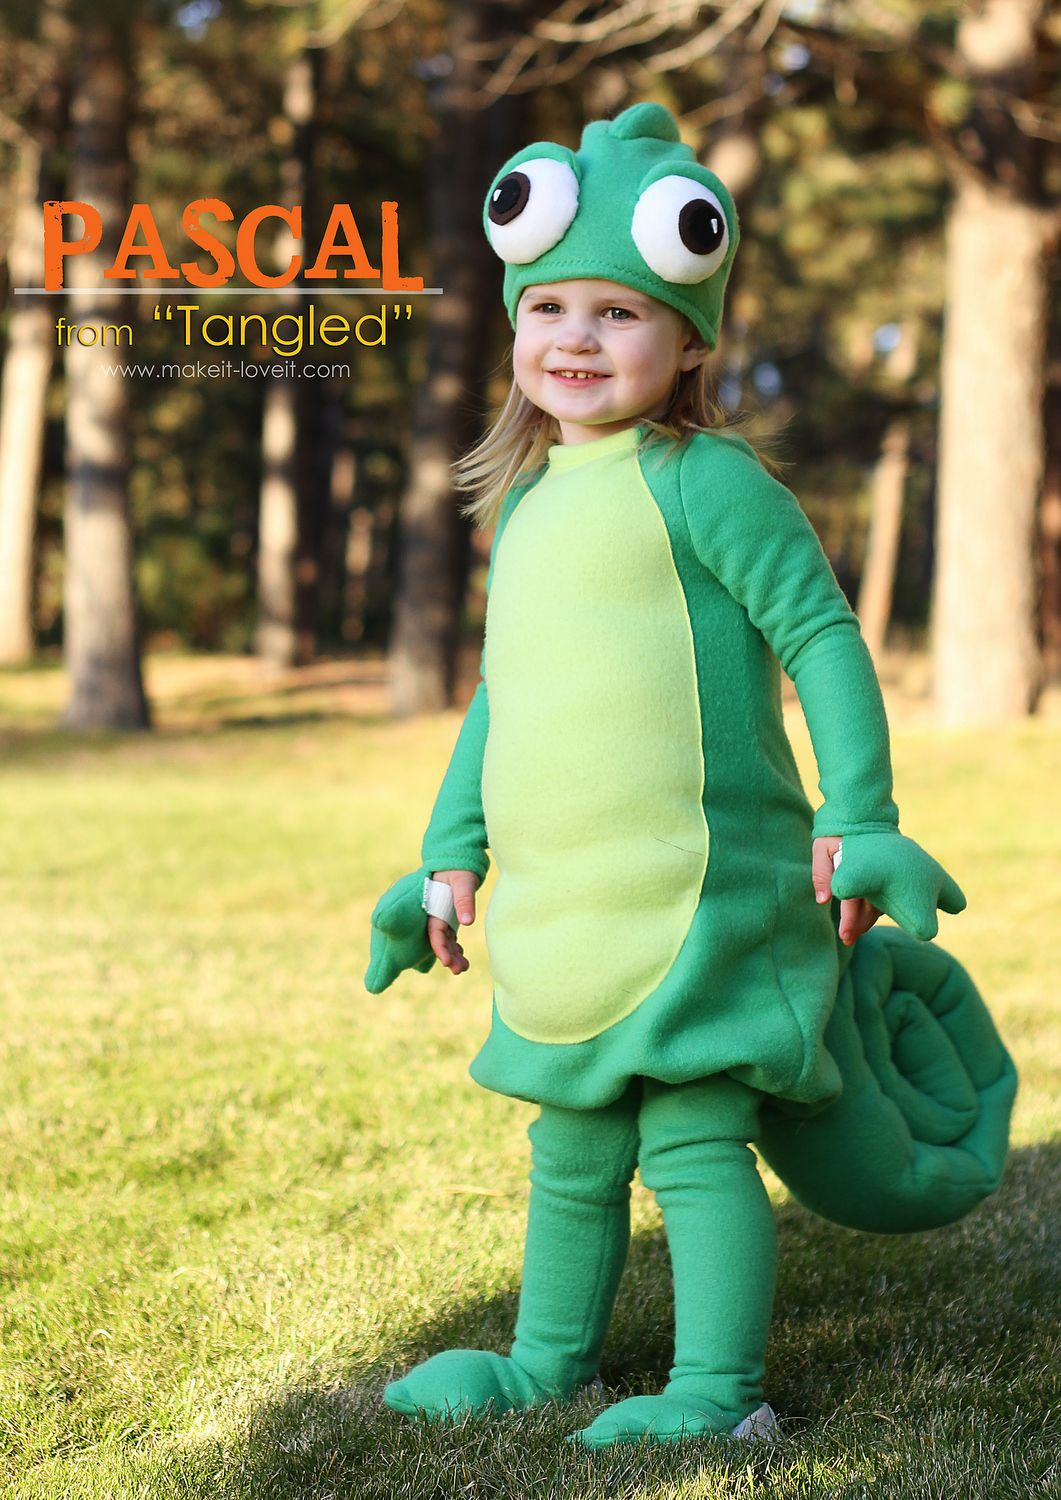 Halloween Costumes 2013 Pascal From Tangled Chameleon Costume Halloween Costumes For Kids Animal Halloween Costumes